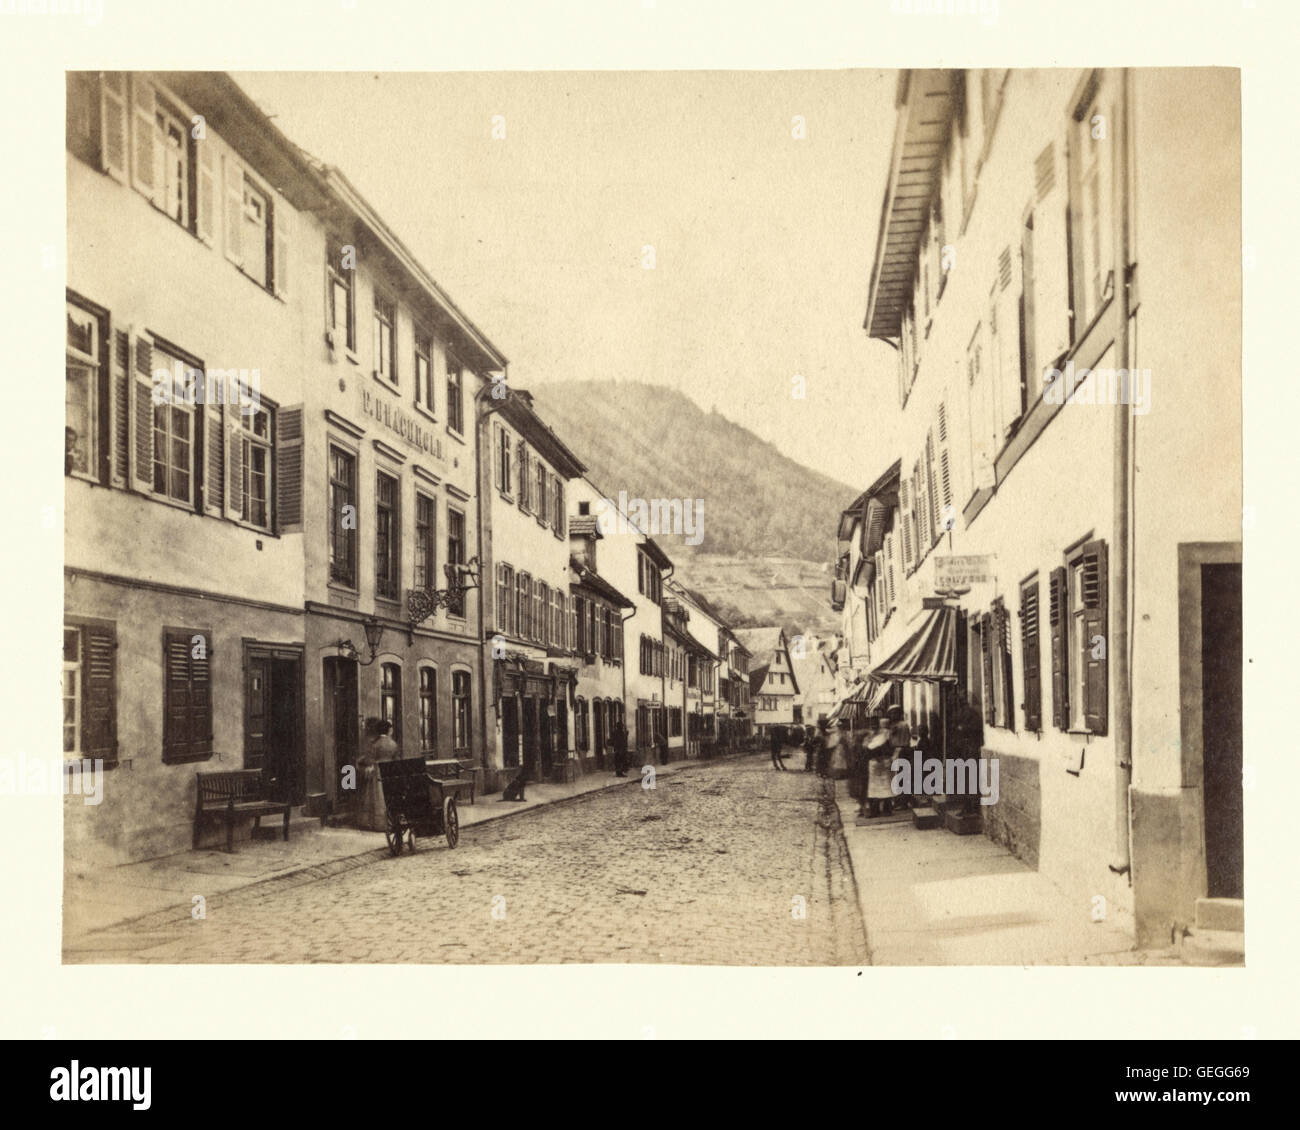 Antique photograph of a street view in Heidelberg, Baden-Wurttemberg, Germany, 19th Century. L Meder - Stock Image